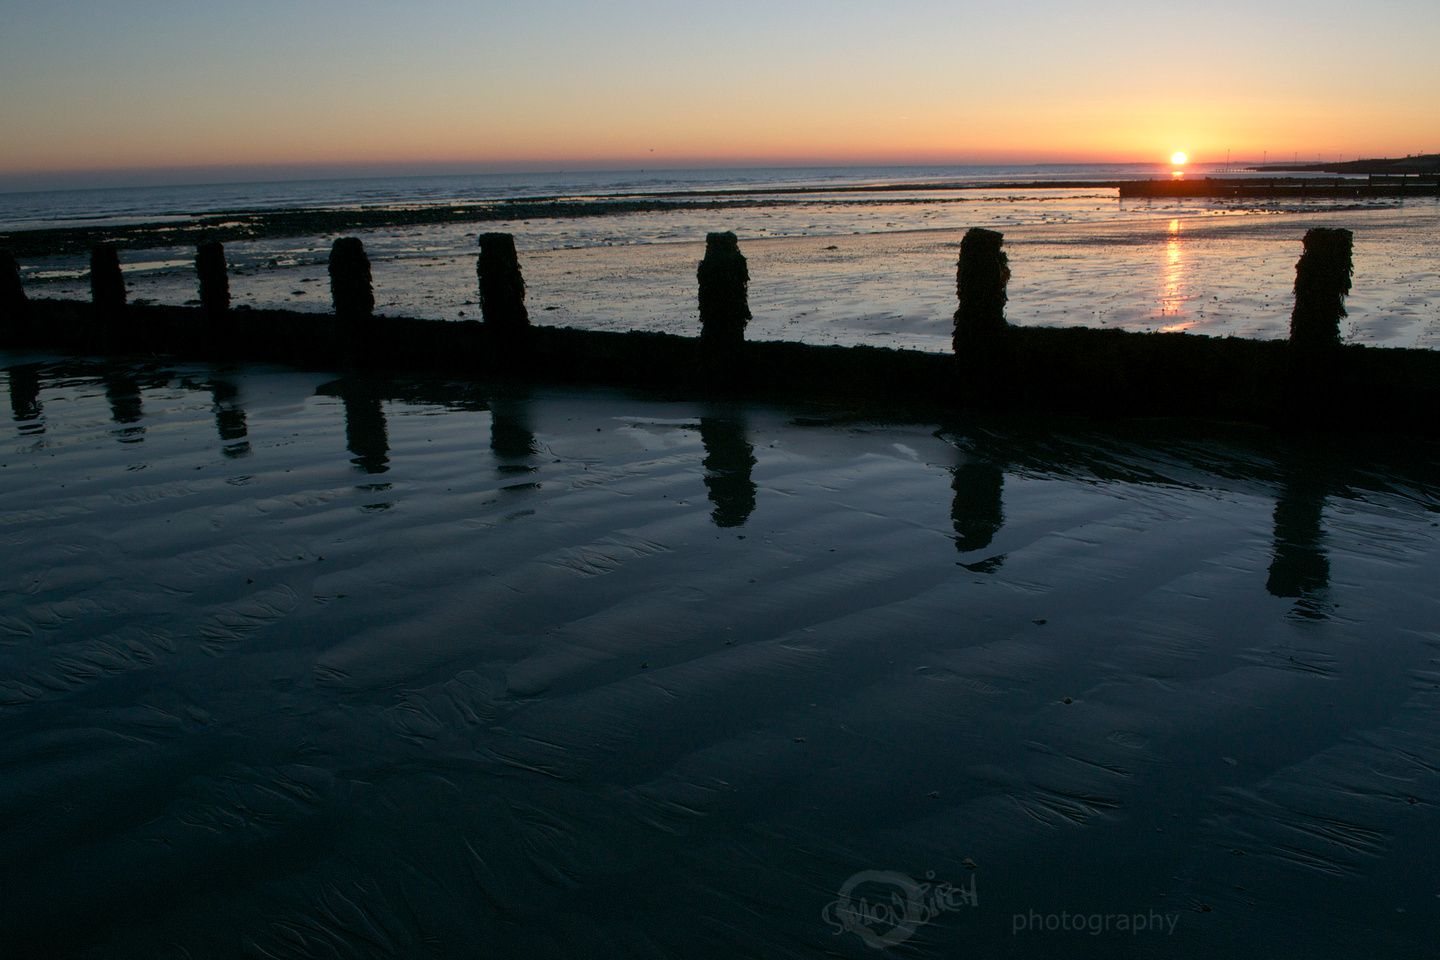 Wildlife Pictures From Bognor Regis To South Africa Are: Sunset, Bognor Regis, Kent Coast